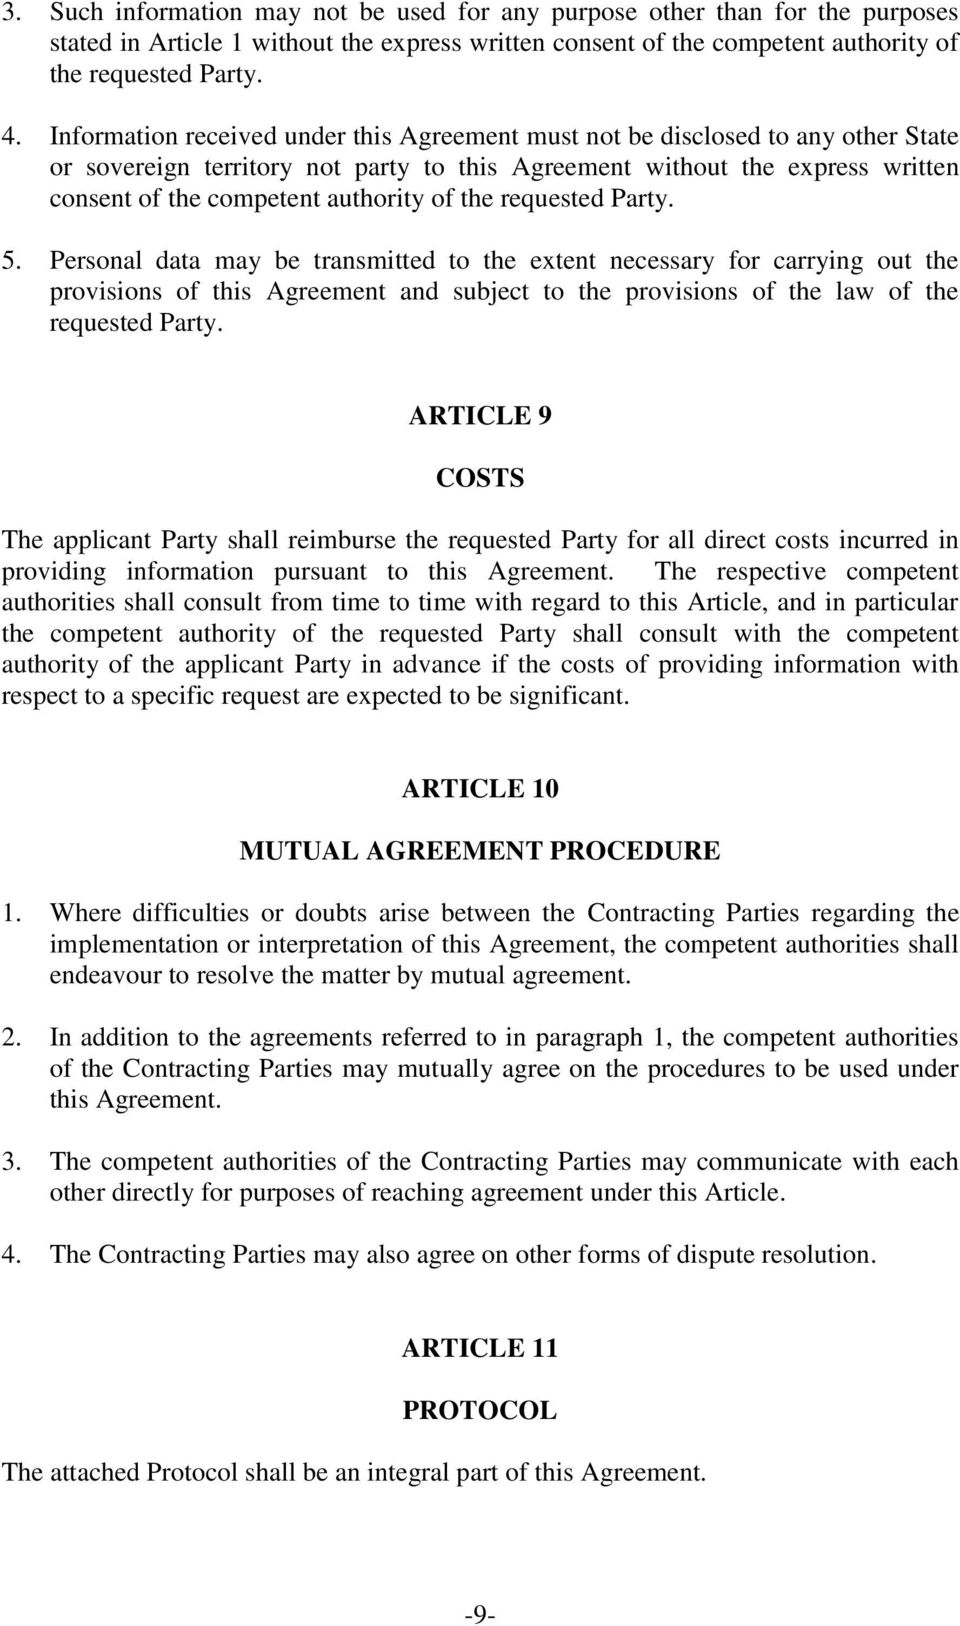 the requested Party. 5. Personal data may be transmitted to the extent necessary for carrying out the provisions of this Agreement and subject to the provisions of the law of the requested Party.